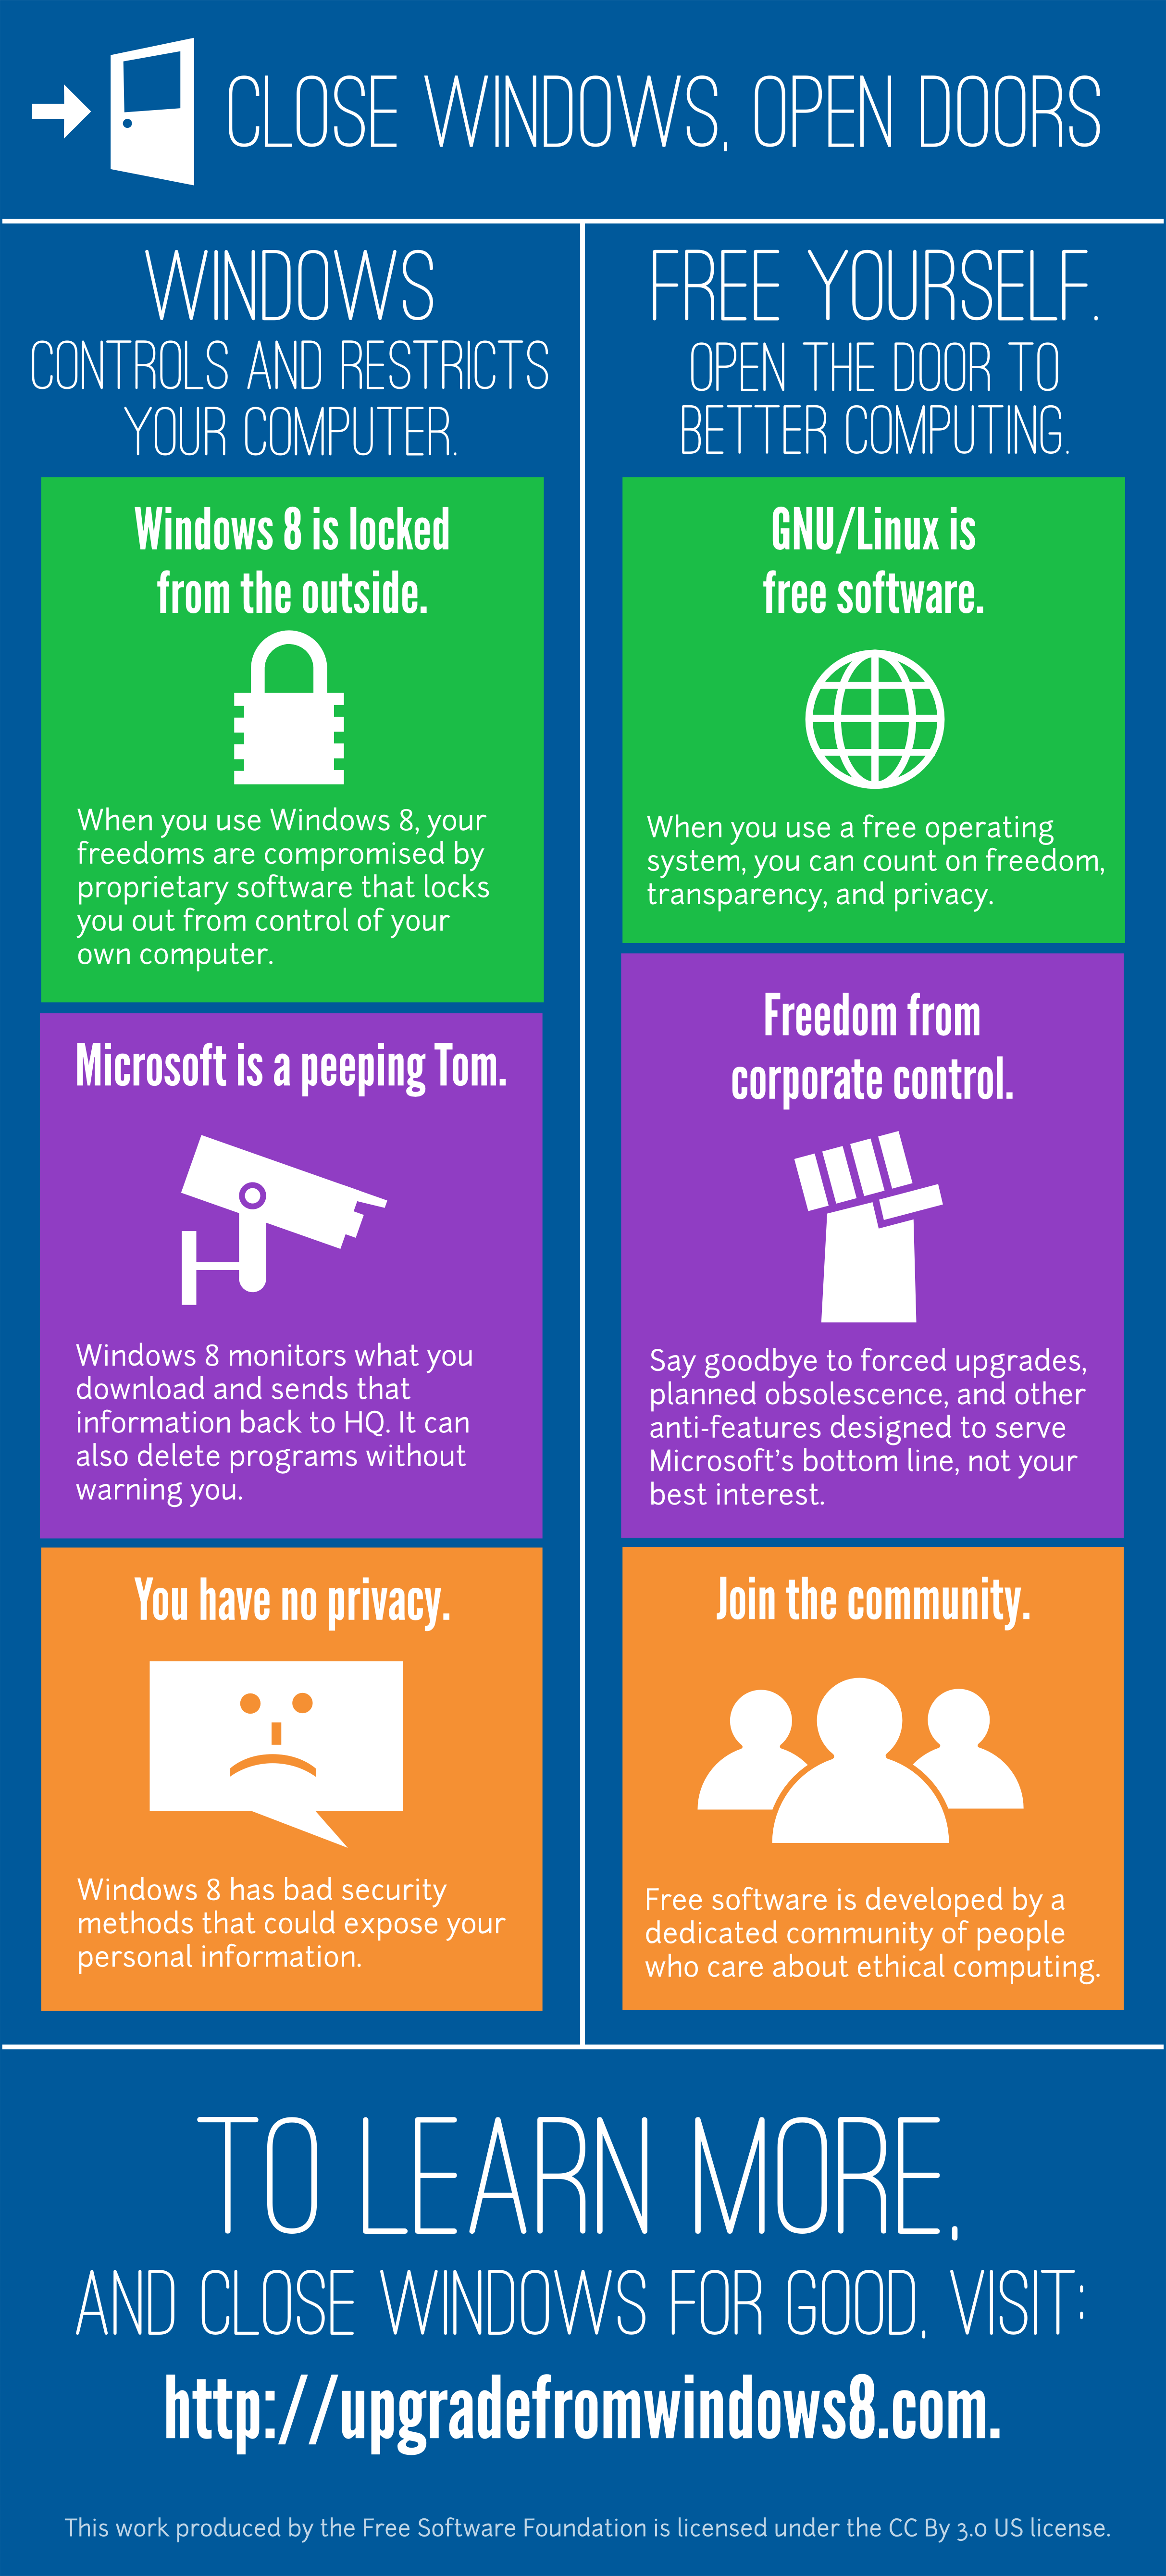 Upgrade From Windows 8 Free Software Foundation